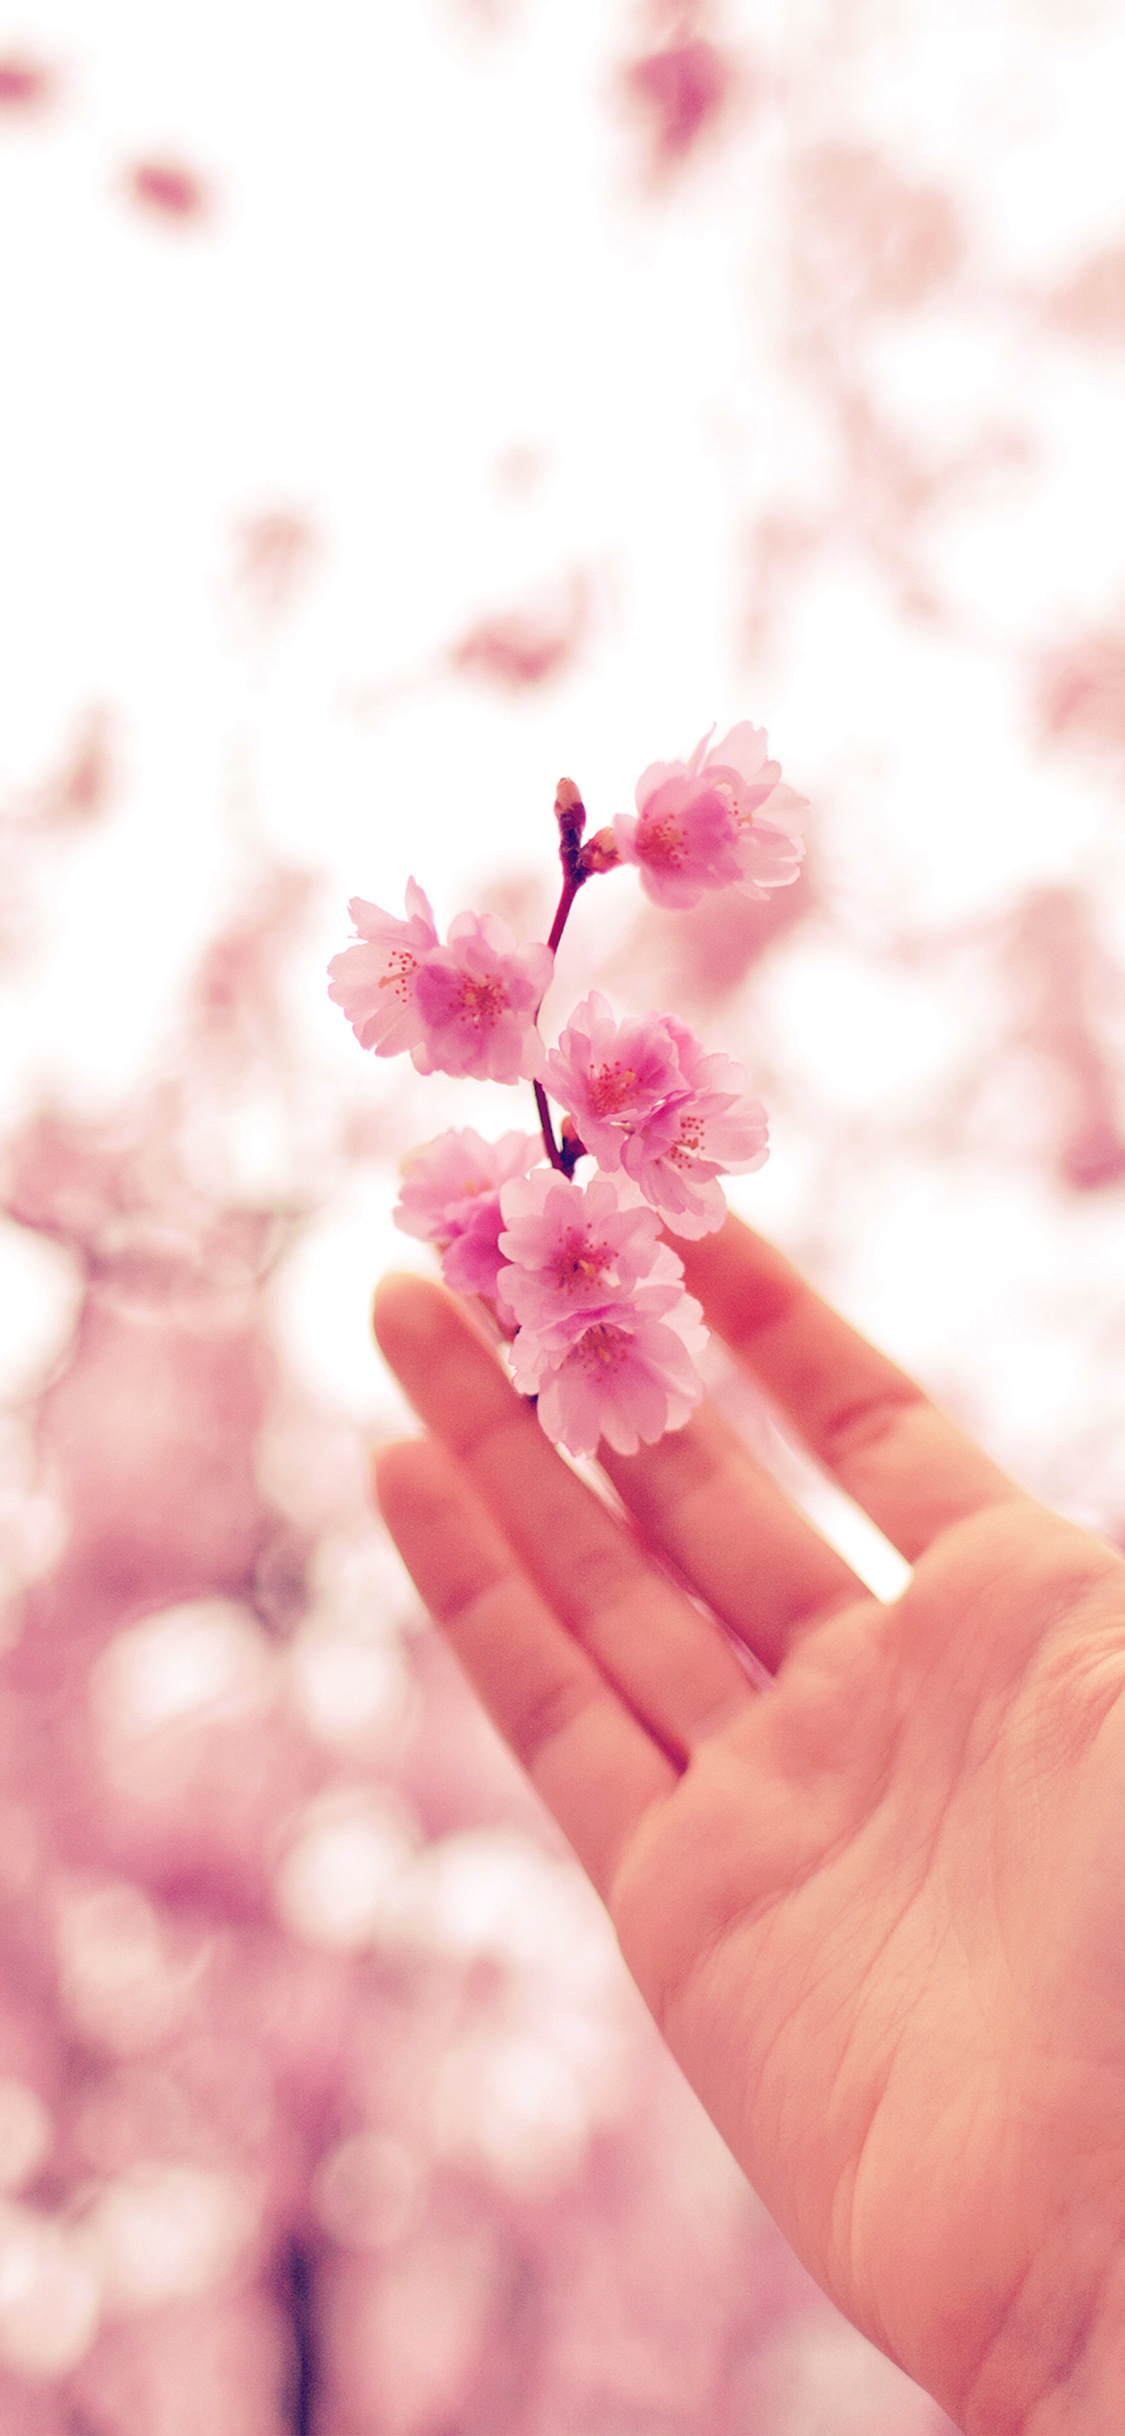 iPhonexpapers.com-Apple-iPhone-wallpaper-nq46-spring-cherry-blossom-bokeh-nature-pink